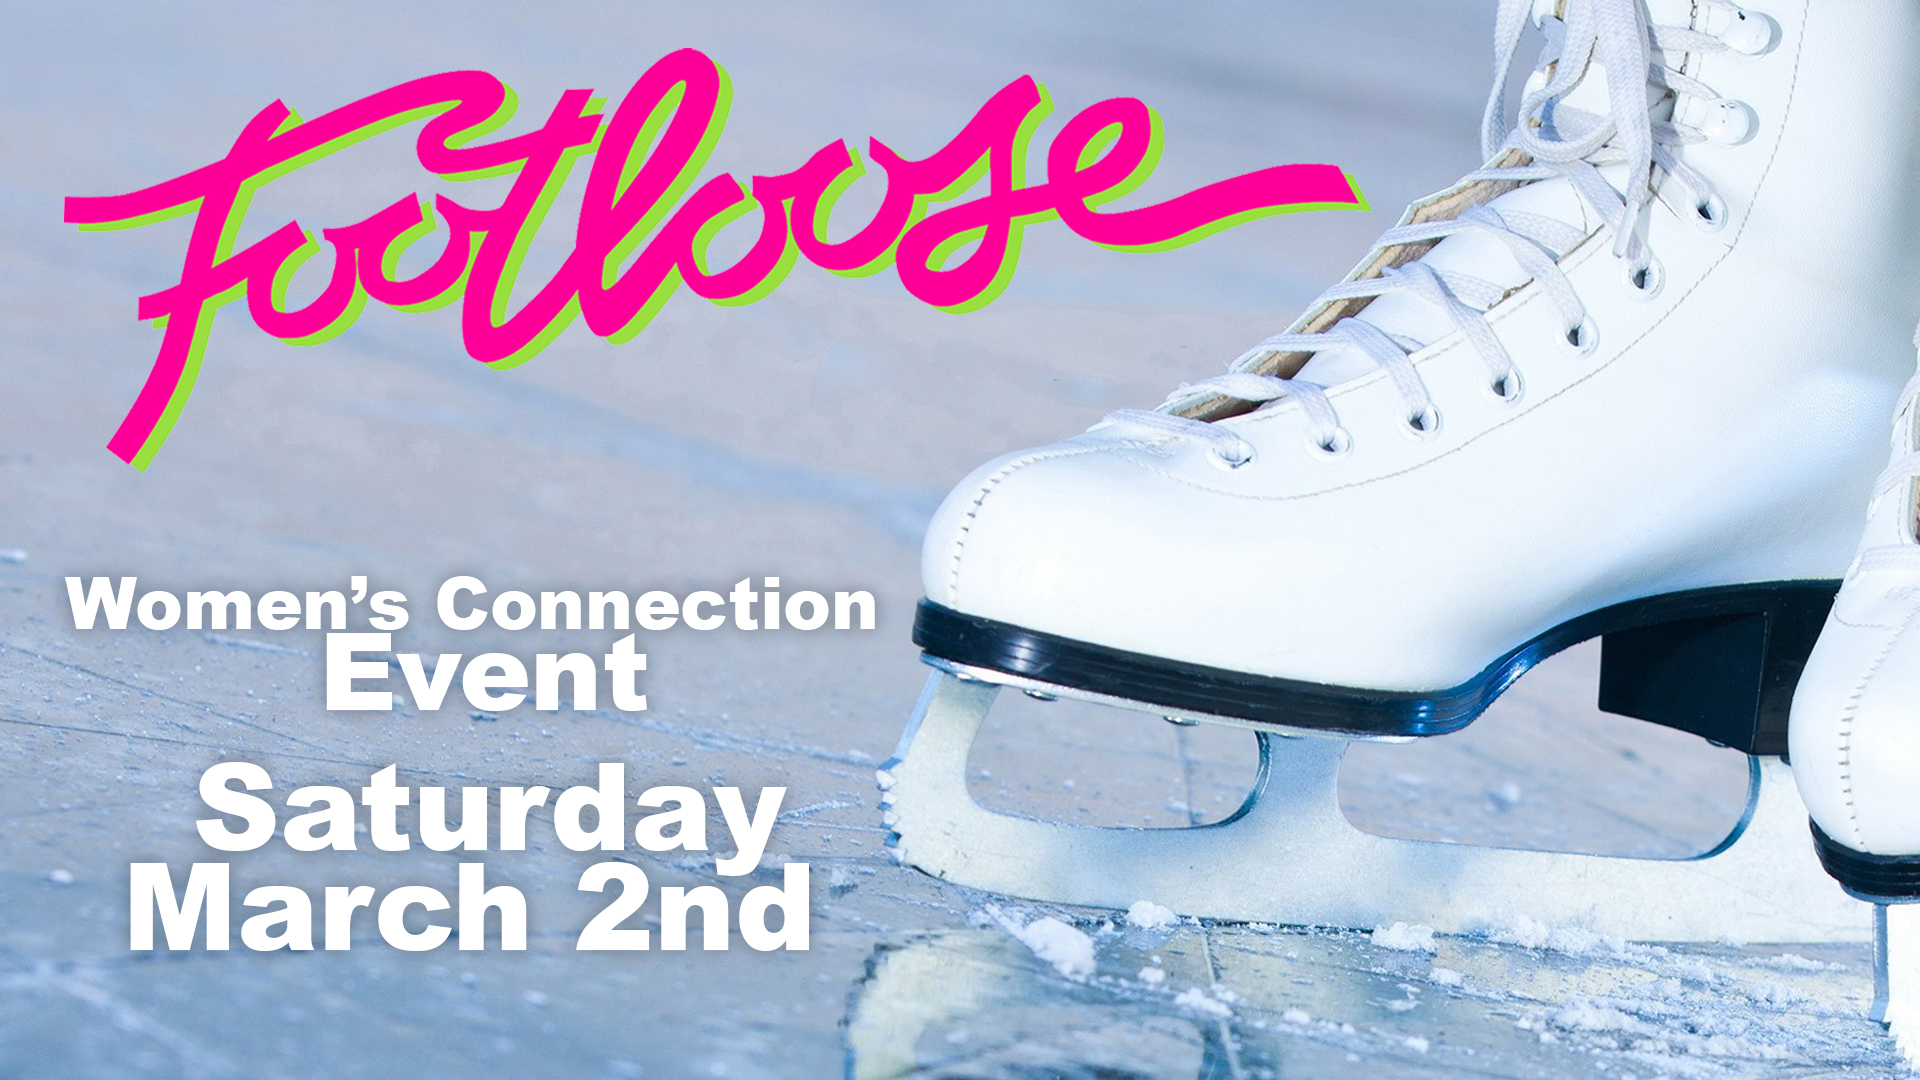 Footloose Event March 2nd 2019.jpg